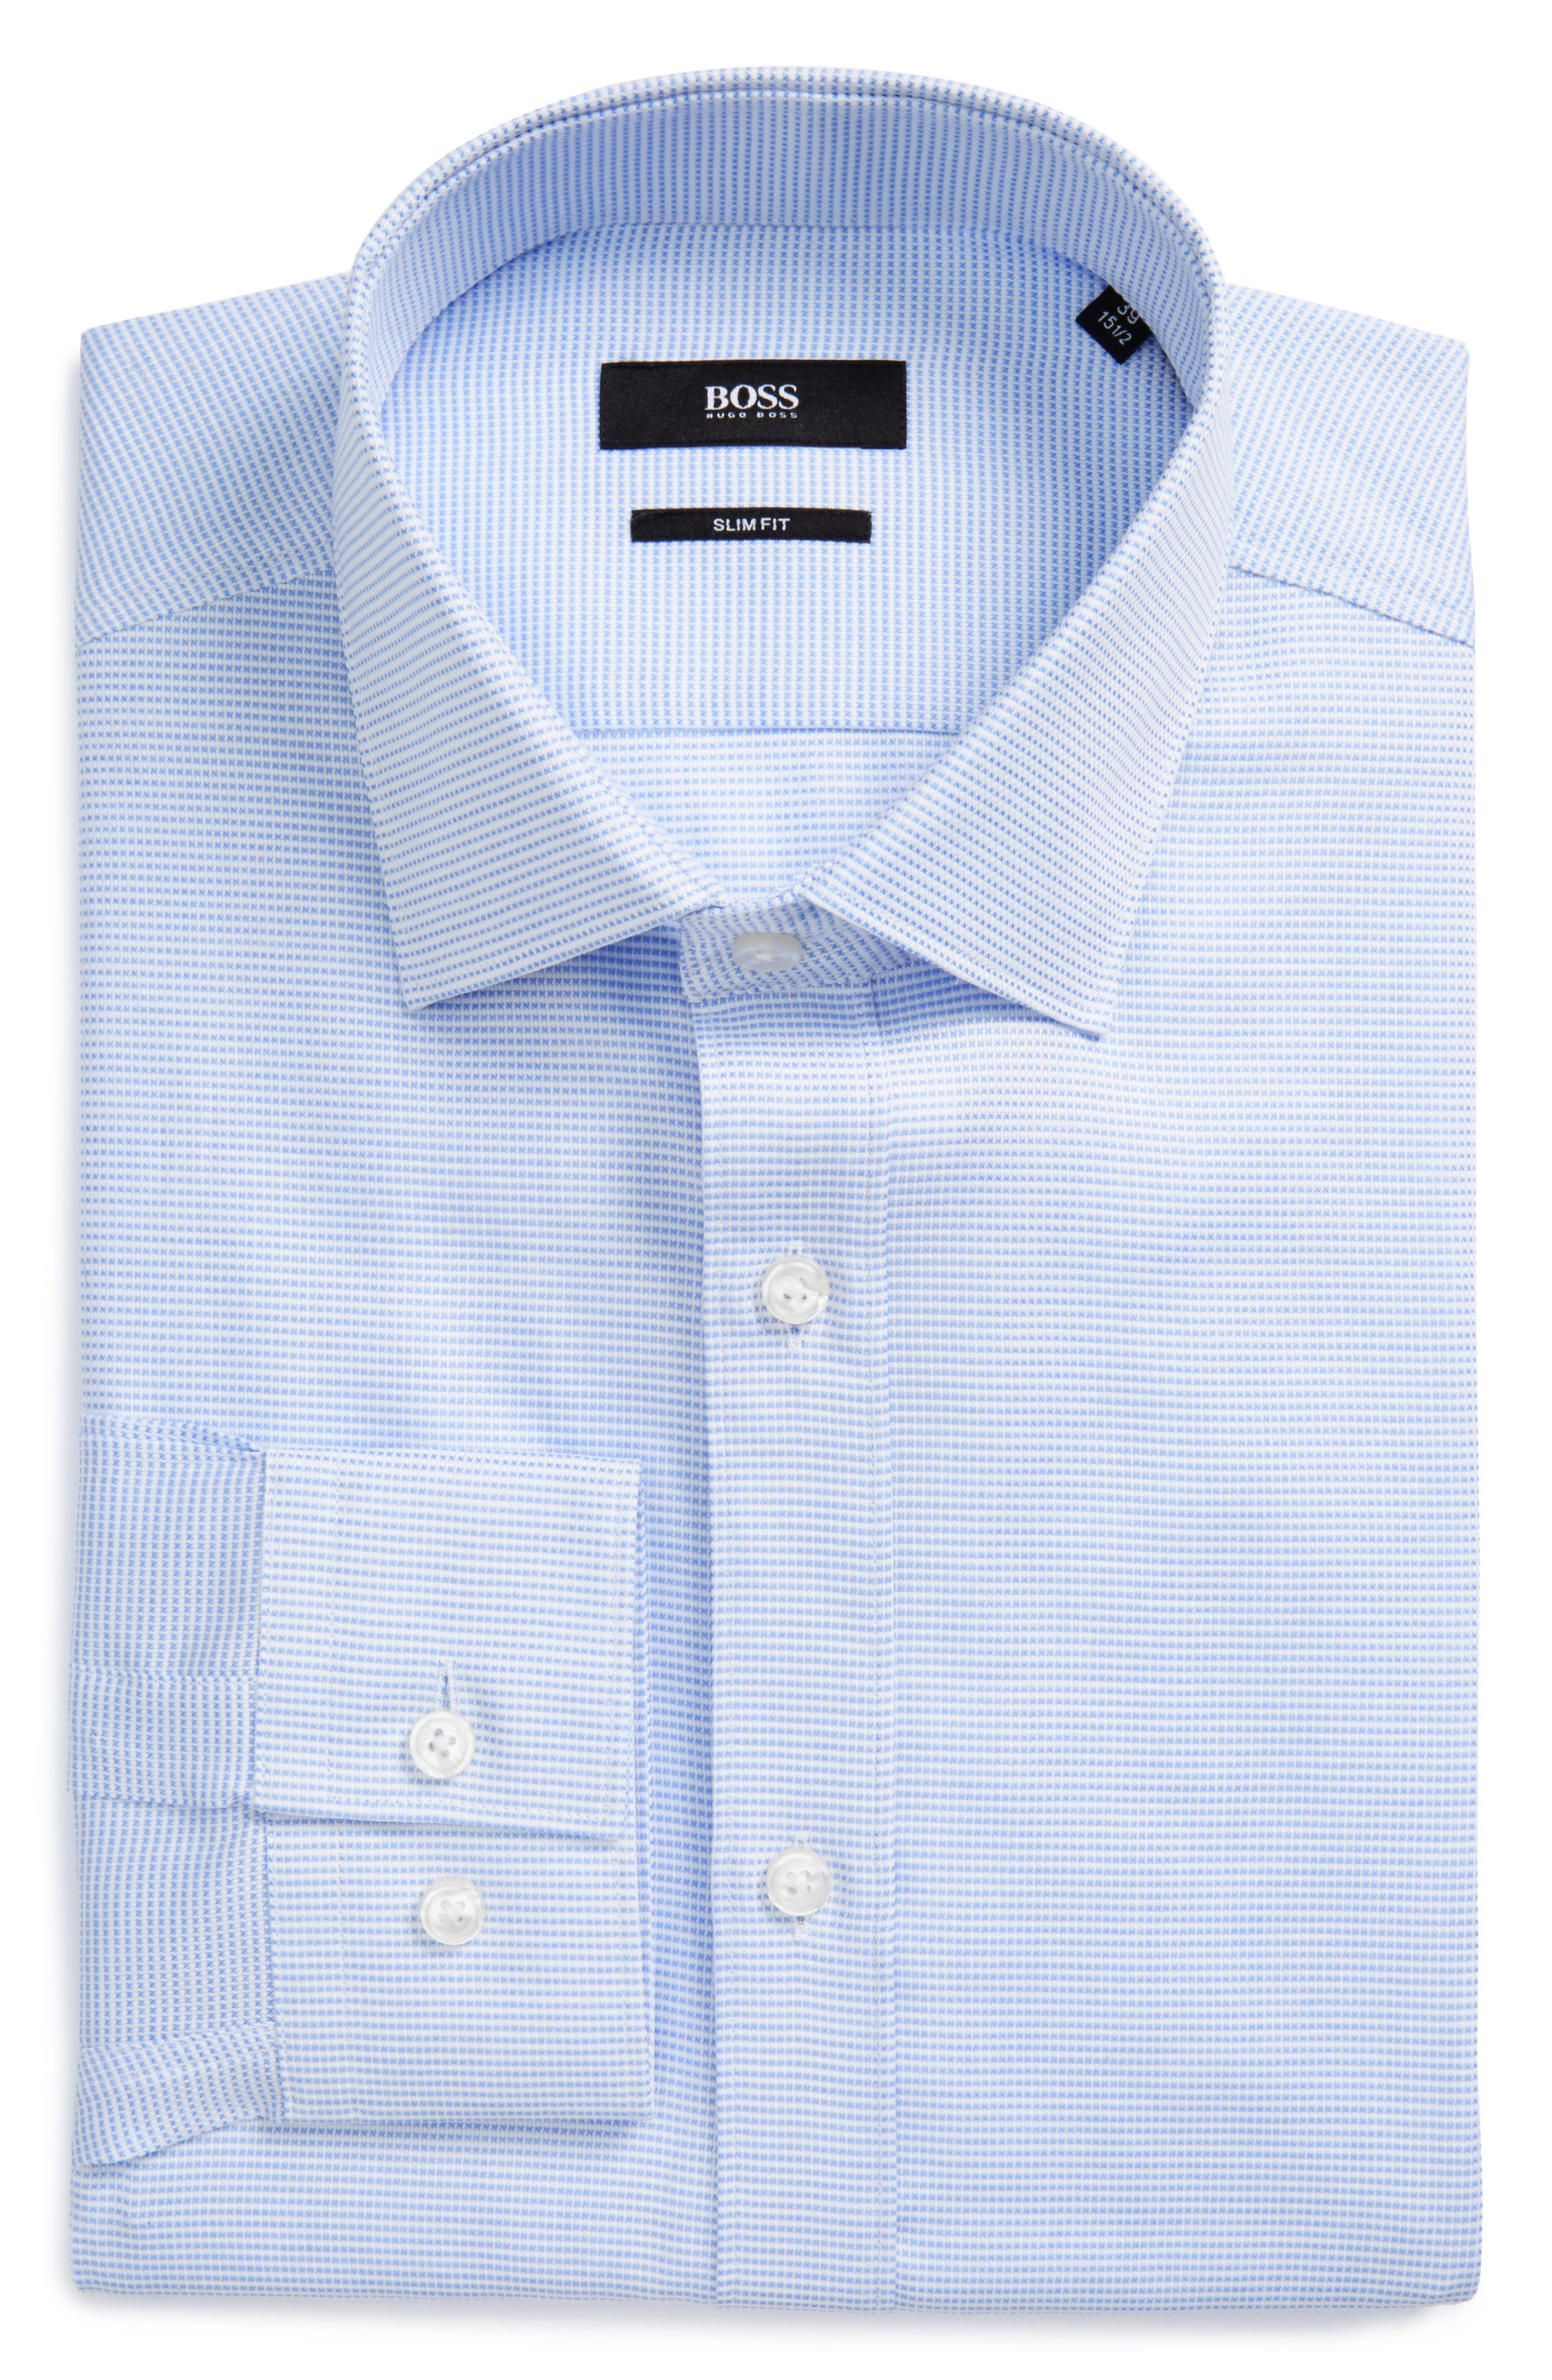 BOSS Issak Slim Fit Check Dress Shirt